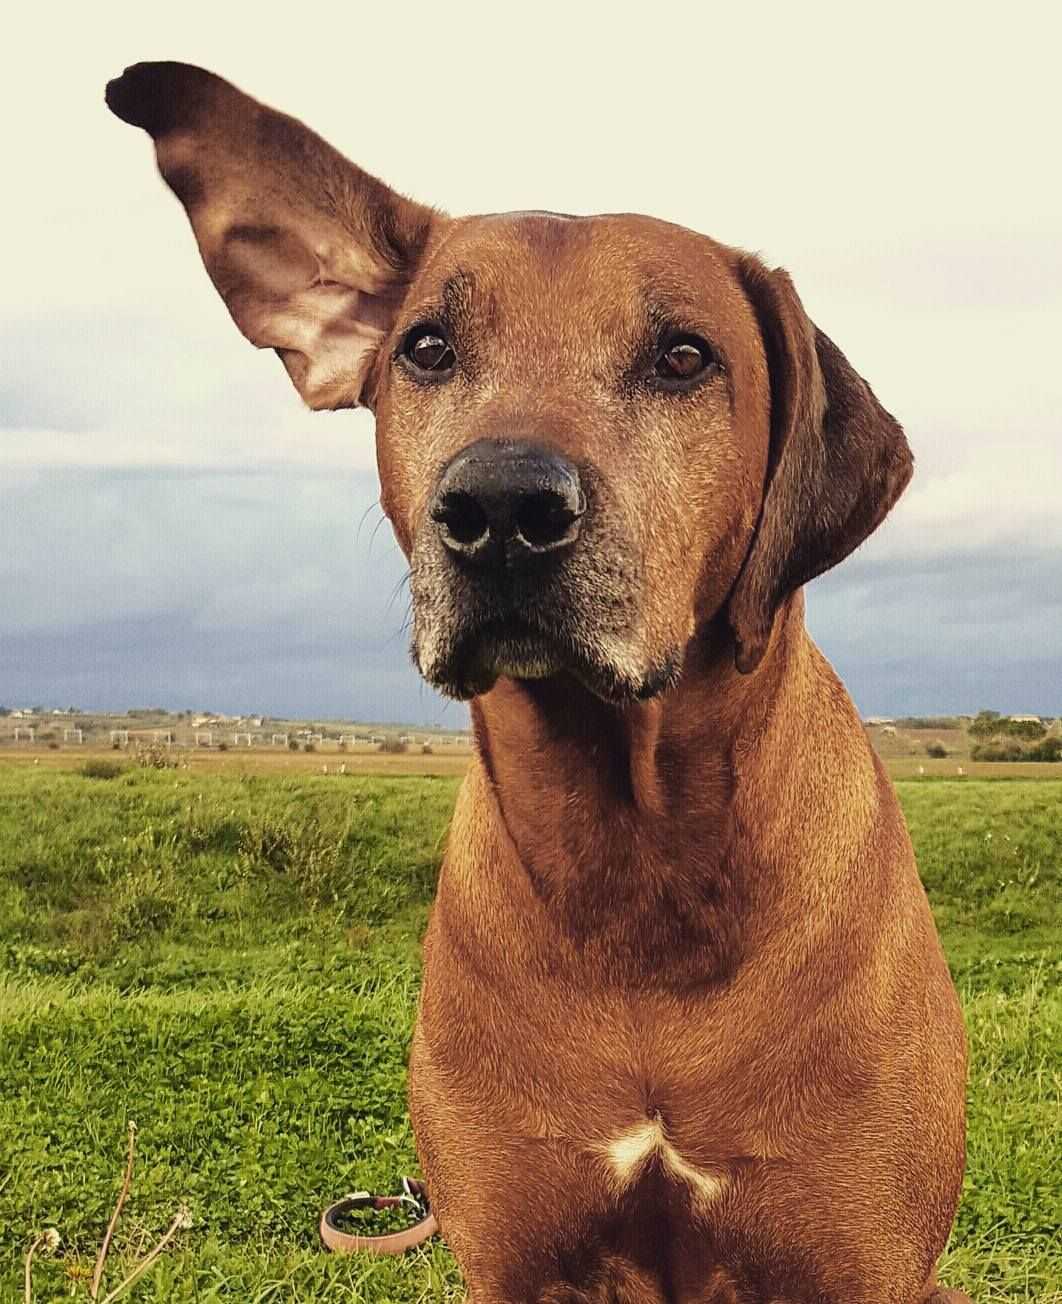 Mom You Should Not Make Me Pics In This Windy Day I Have An Image To Preserve As A Rhodesian Ridgeback Dog Rhodesian Ridgeback Puppies Large Dog Breeds